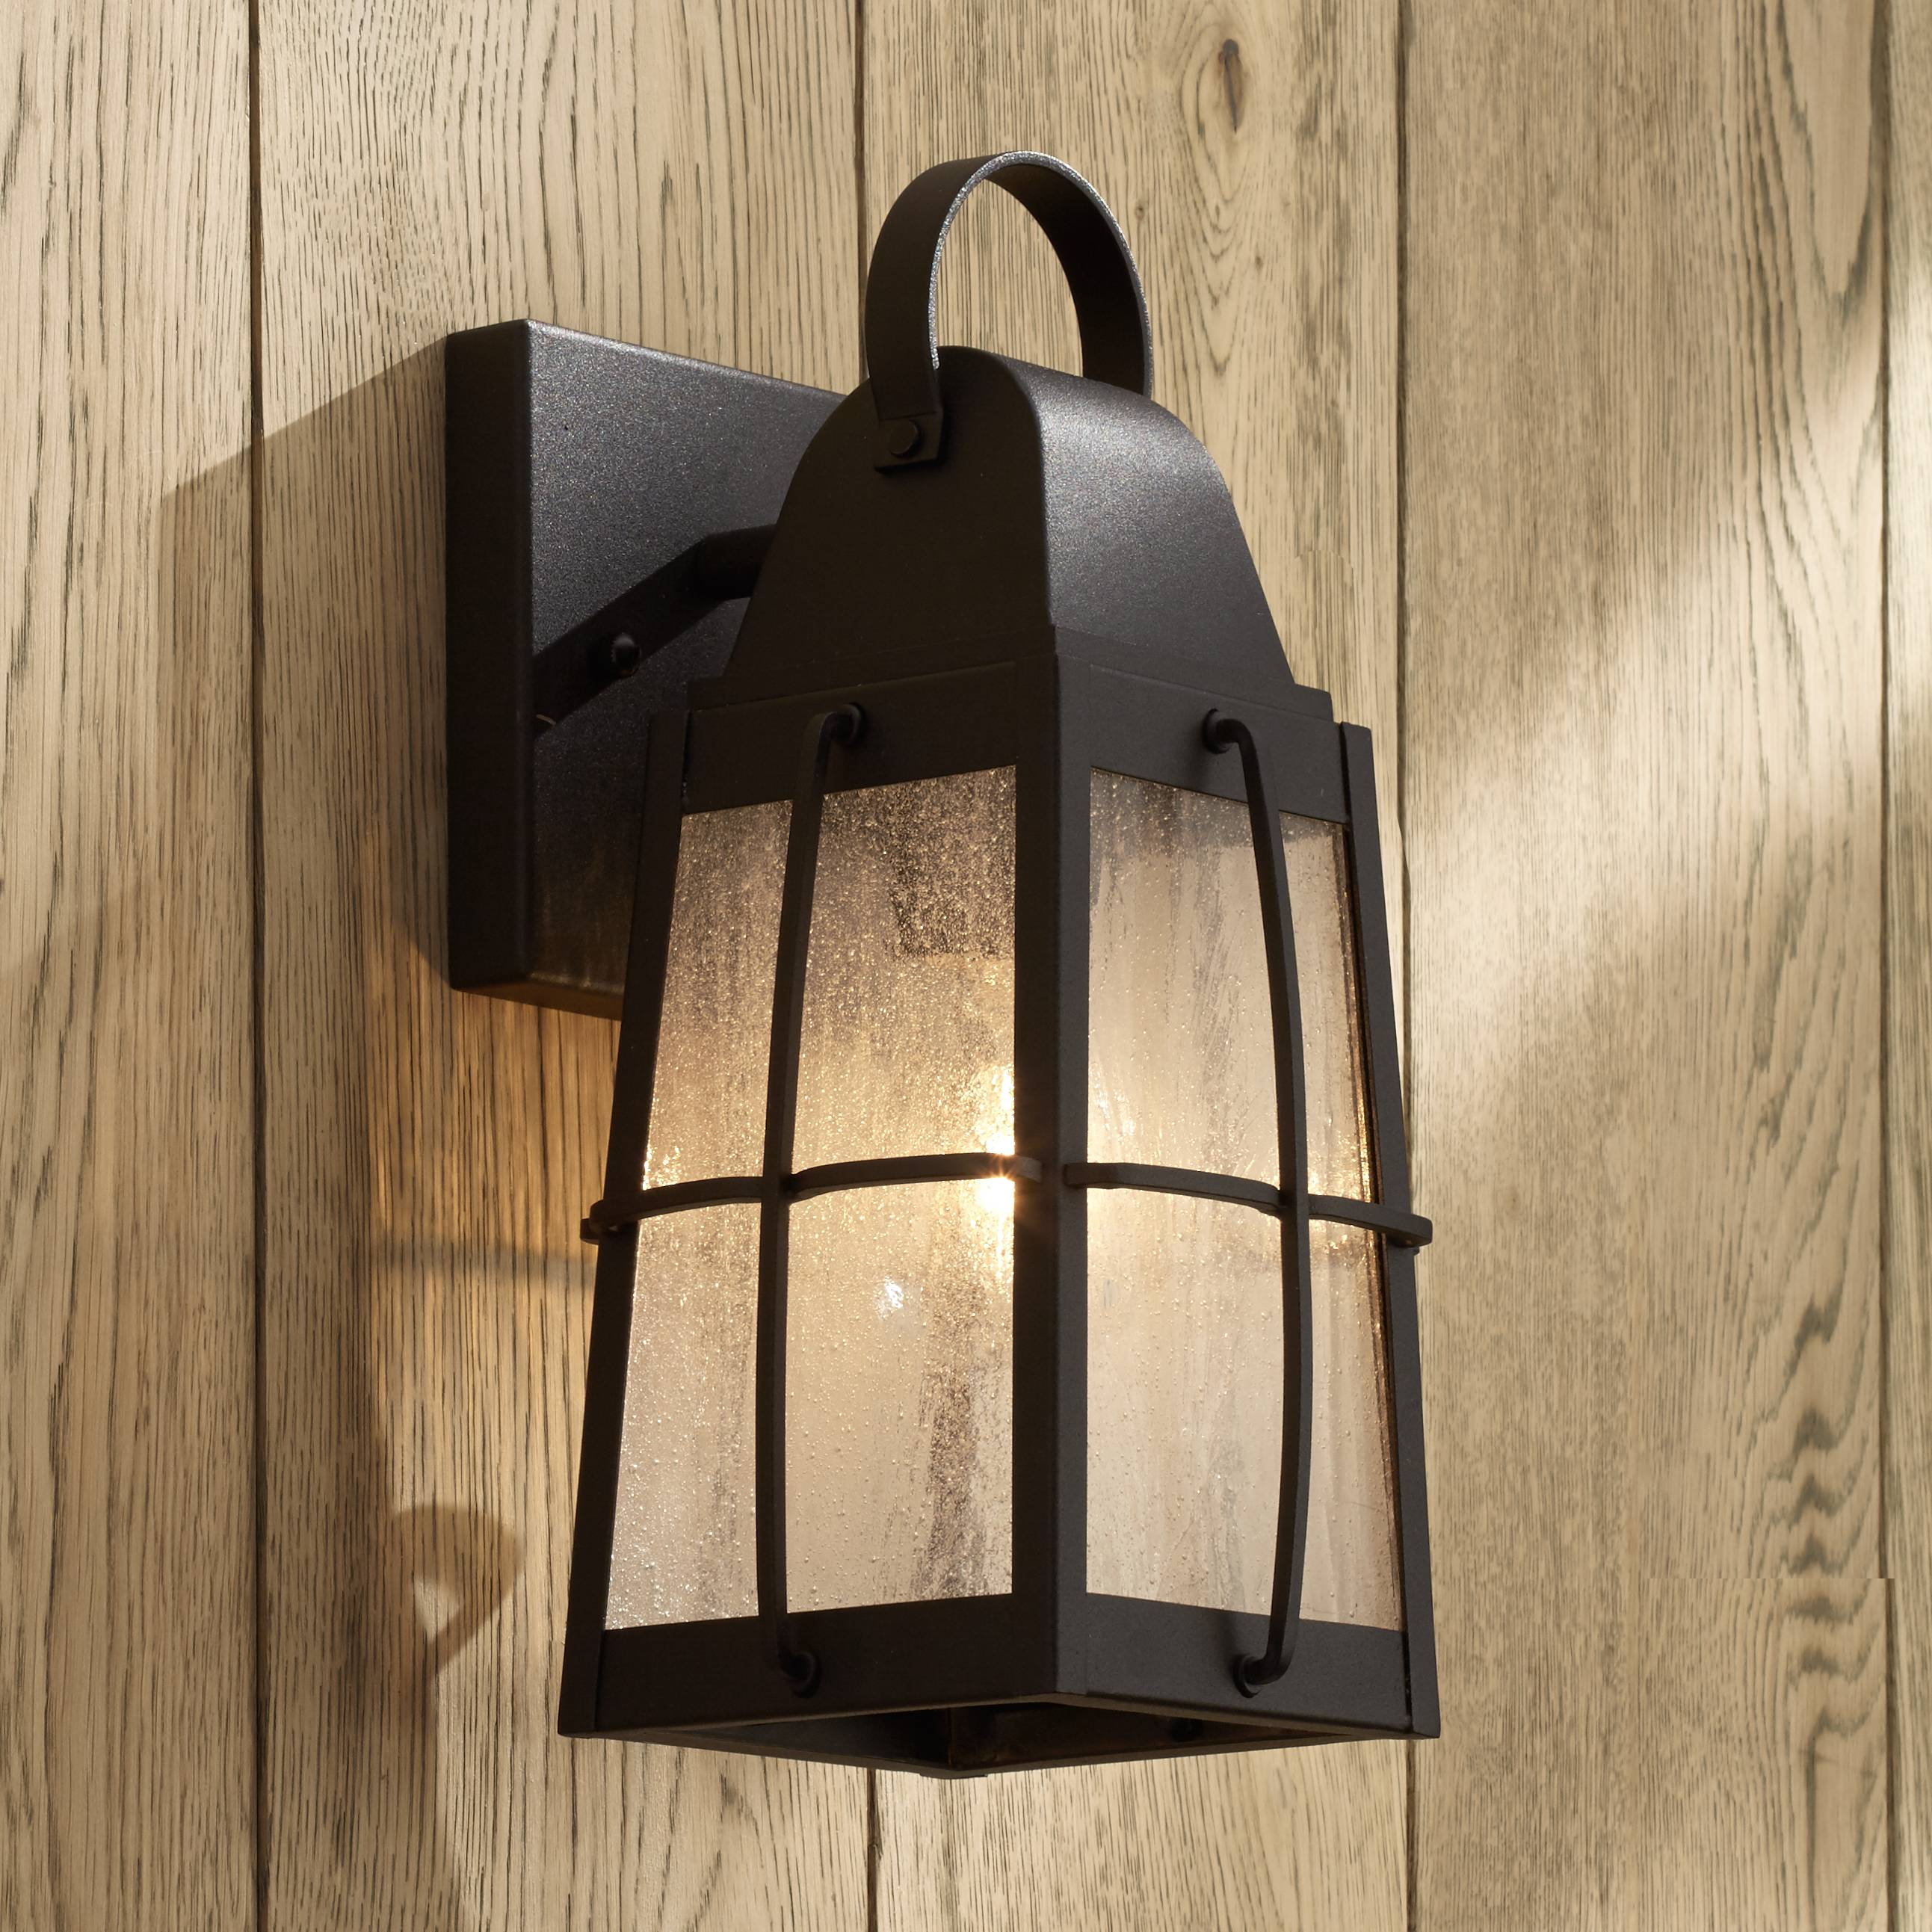 Kichler tolerand seedy 12 high black outdoor wall light